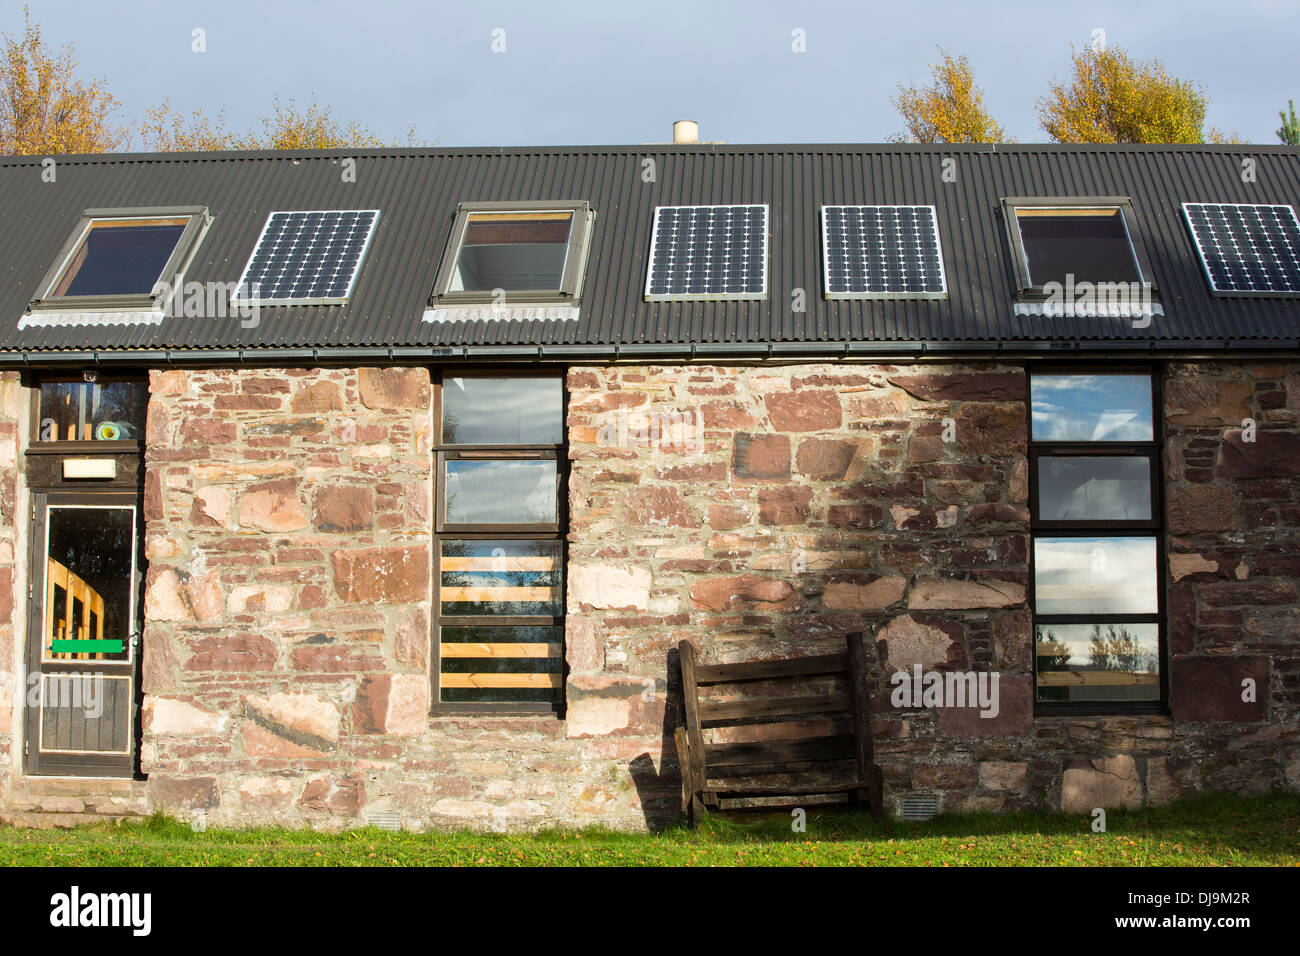 Remote School Scotland Stock Photos Whole House Window Fan Wiring Diagram Solar Panels On The In Scoraig Nw One Of Most